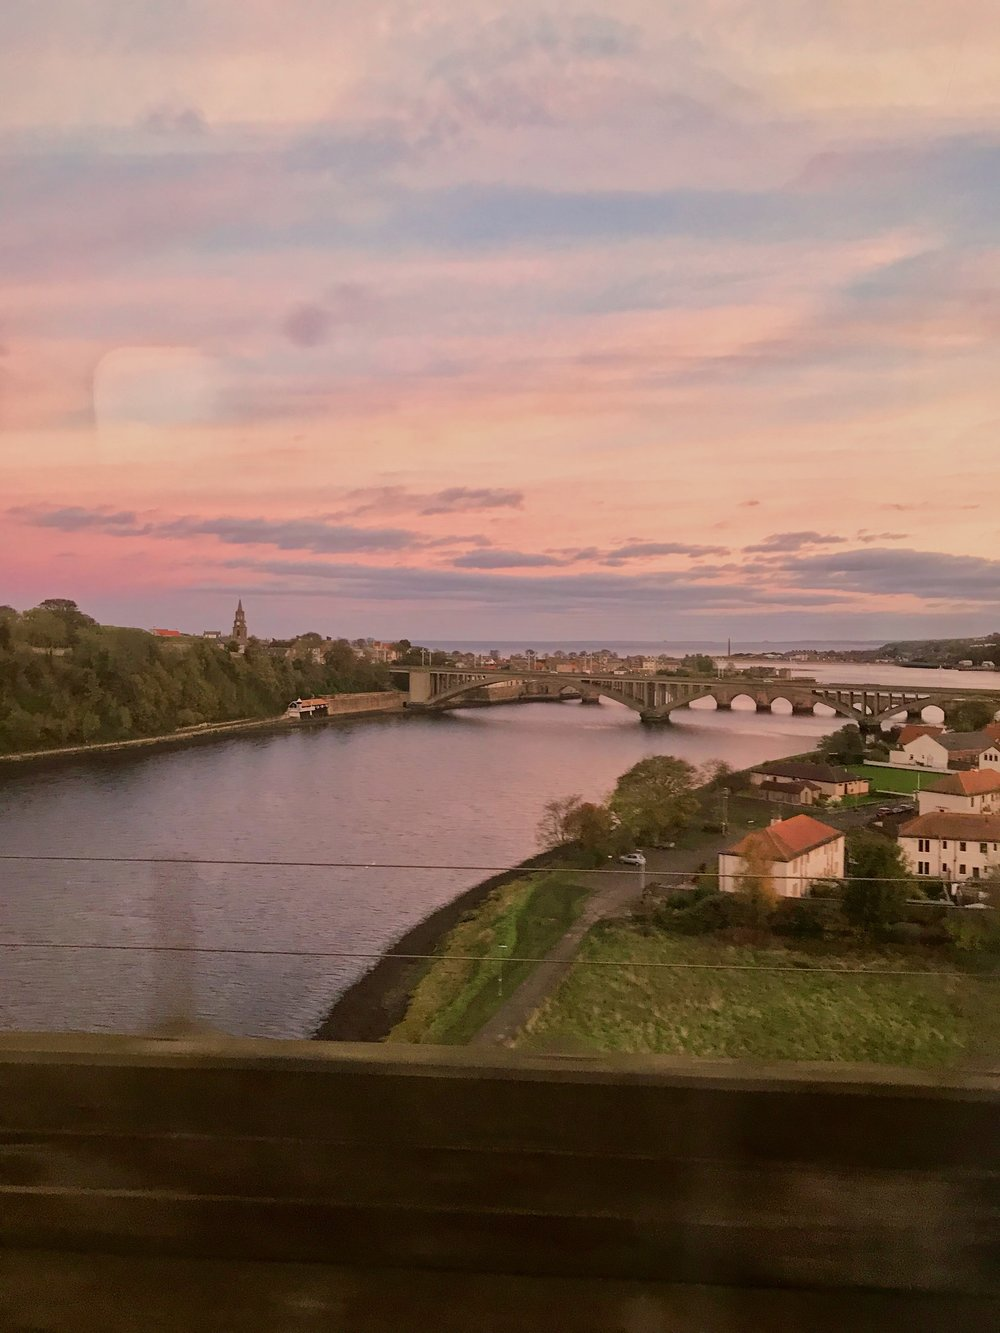 The train wasn't all bad. This is the view from the window of sunset in Berwick-upon-Tweed.